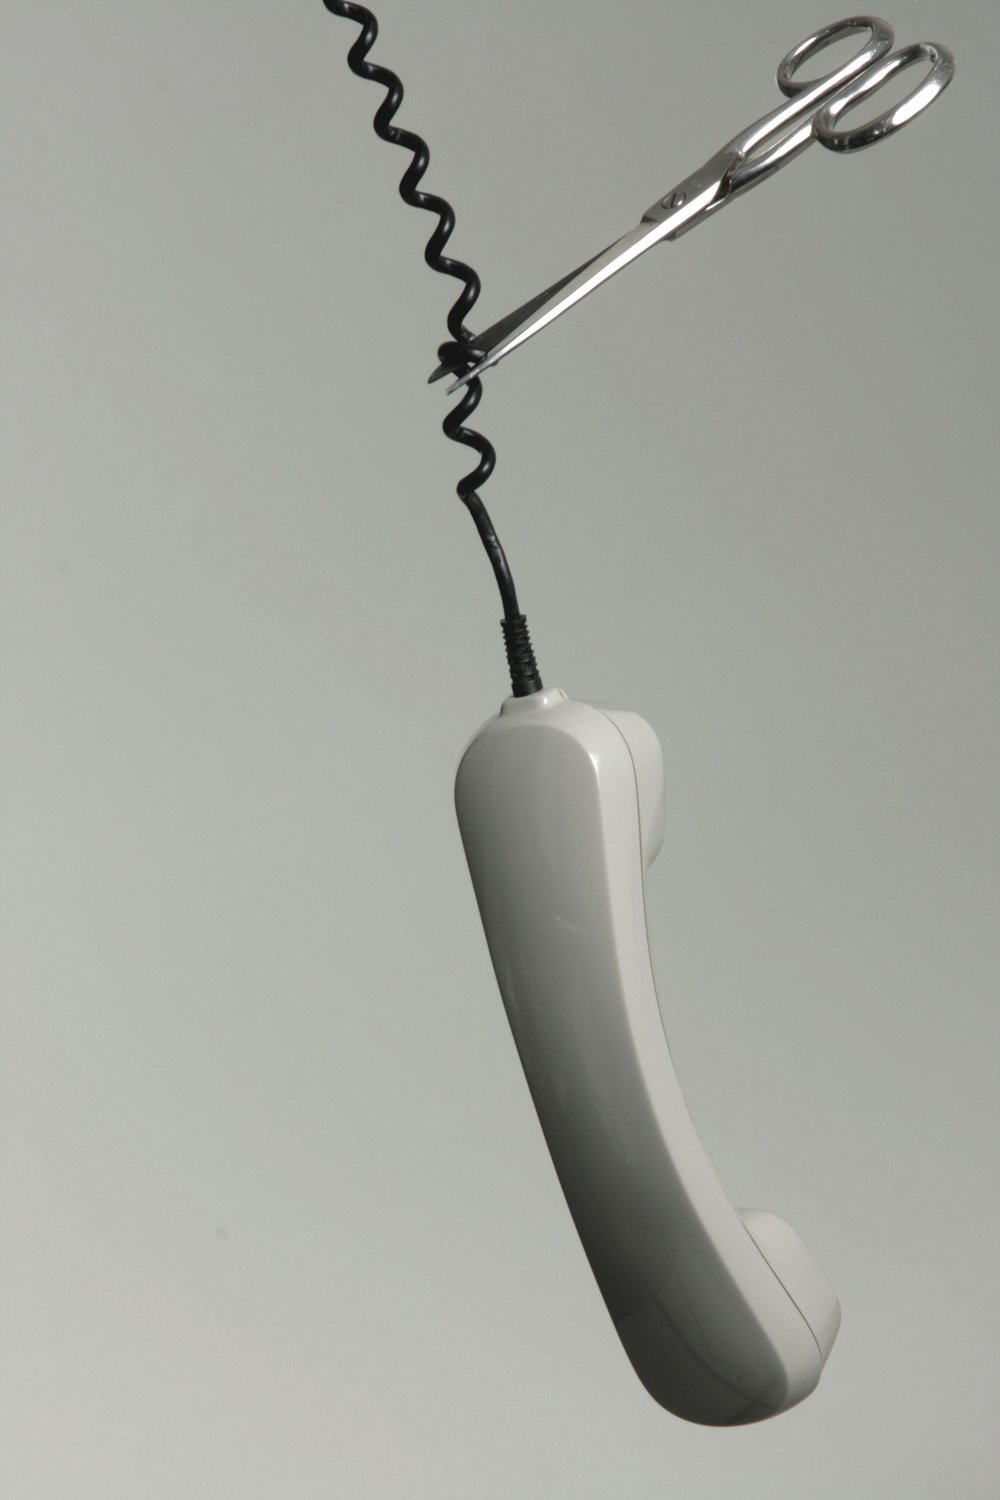 black-and-white-cable-connection-434349.jpg